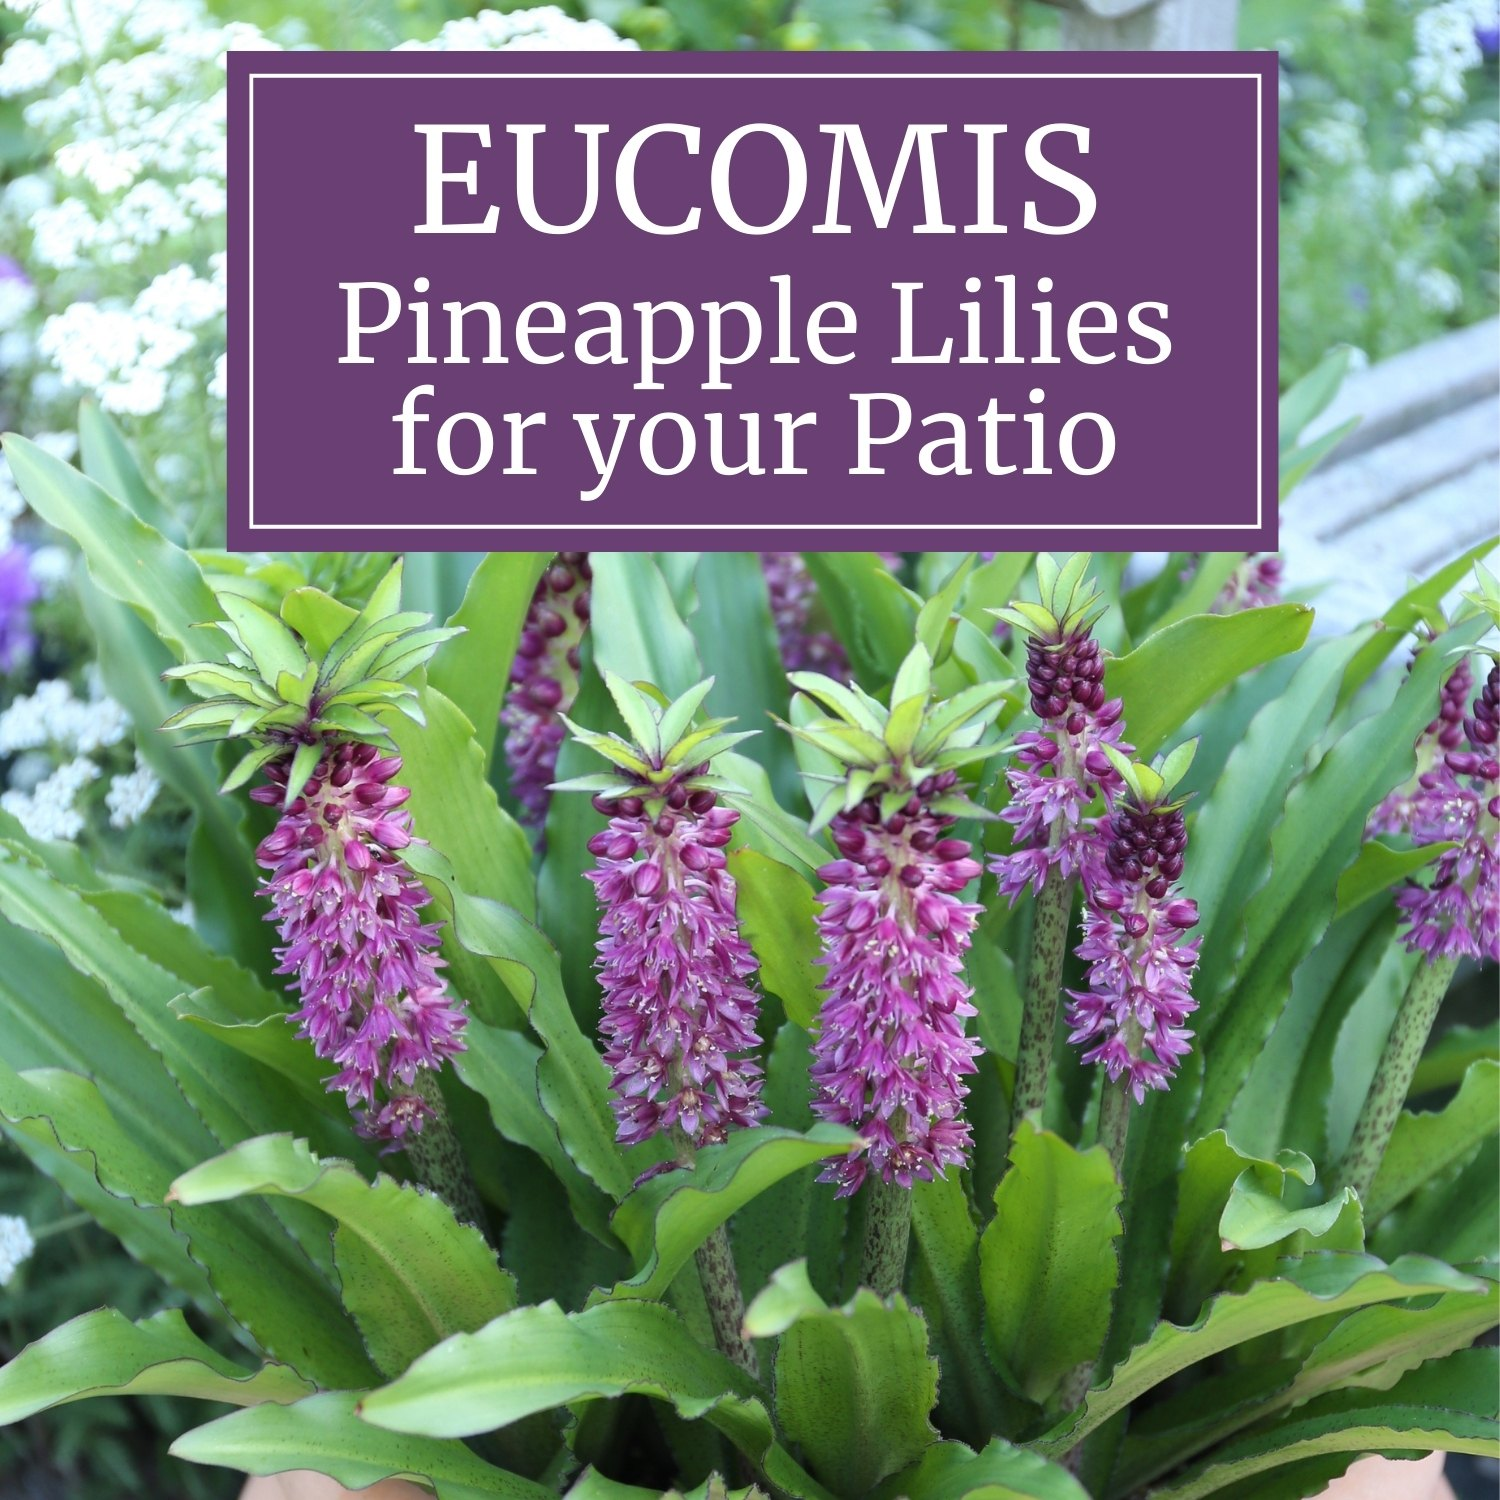 Eucomis Pineapple Lilies for Your Patio - Longfield Gardens